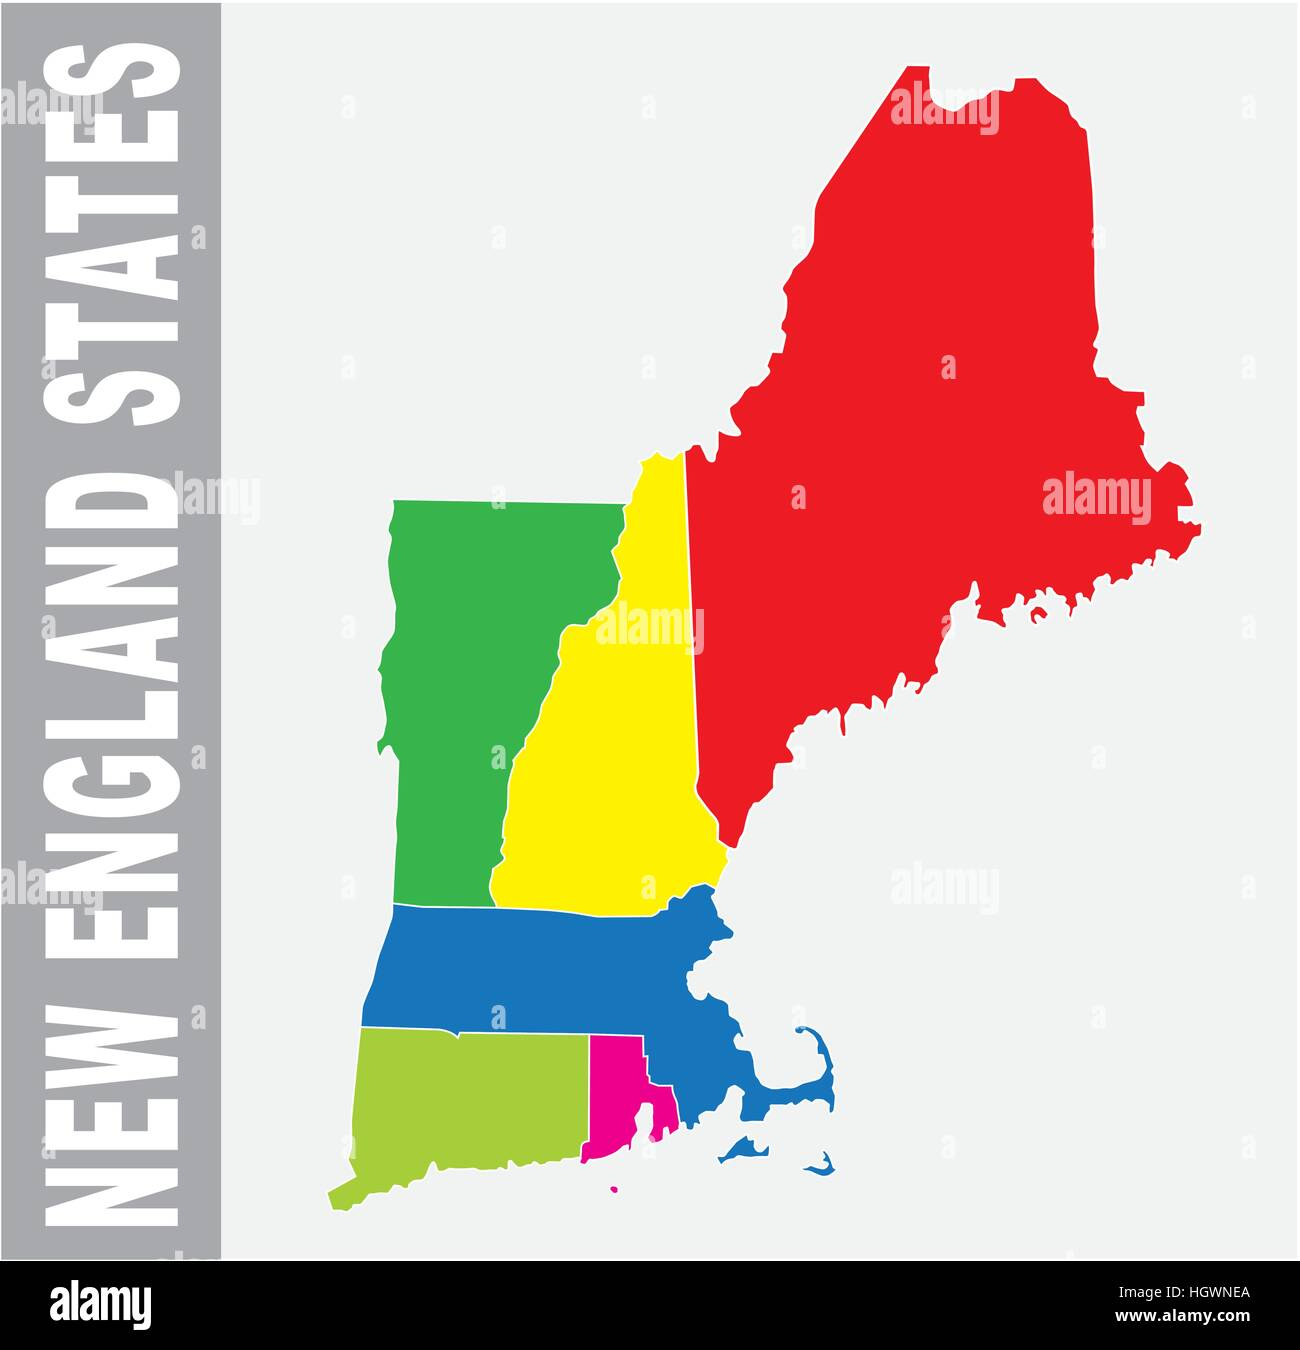 Colorful New England States Administrative And Political